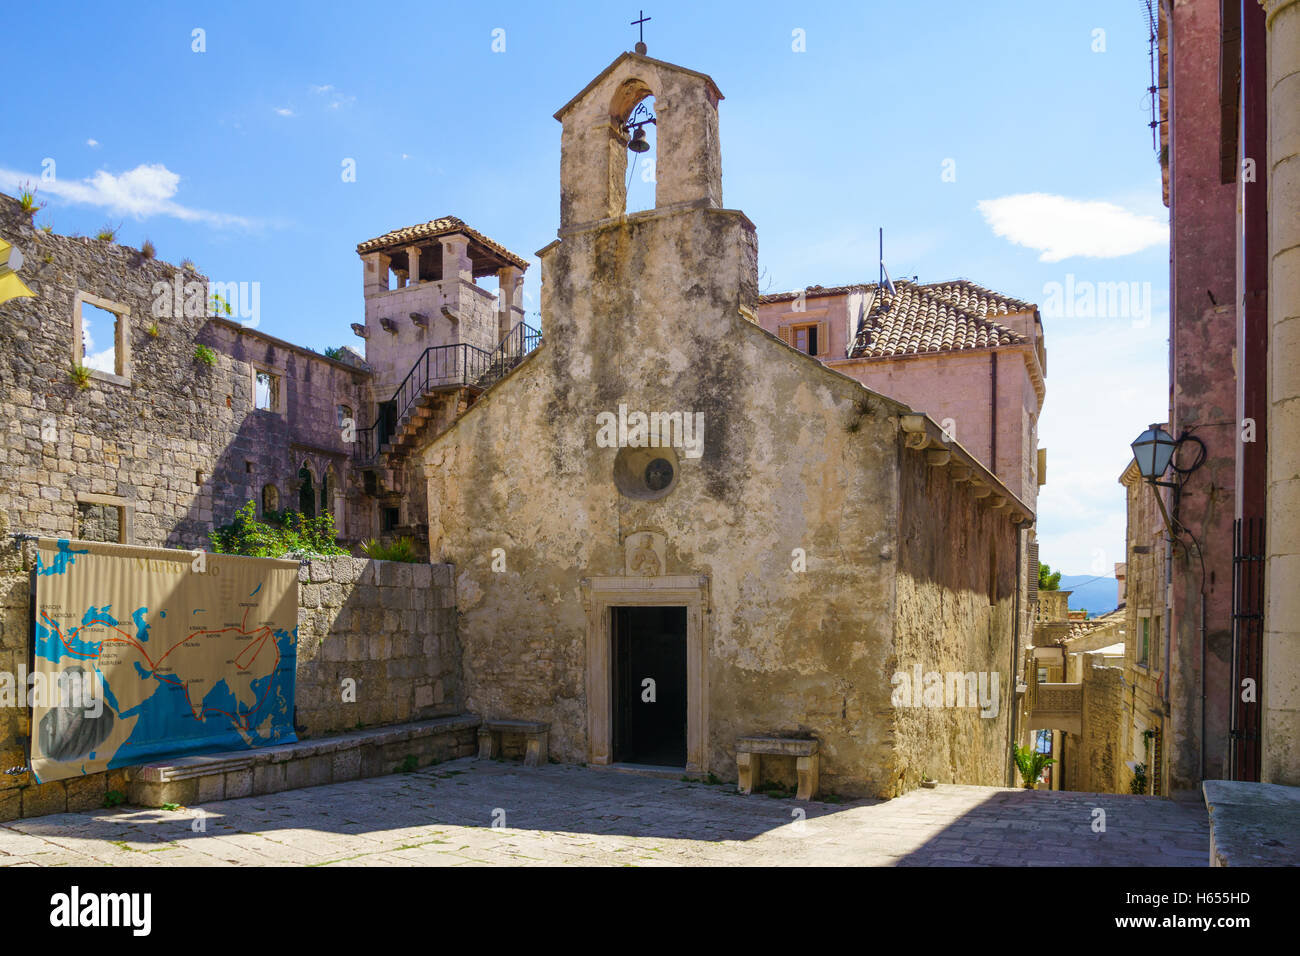 KORCULA, CROATIA - JUNE 26, 2015: The Saint Peter church and a map of the voyages of Marco Polo, in the old town - Stock Image